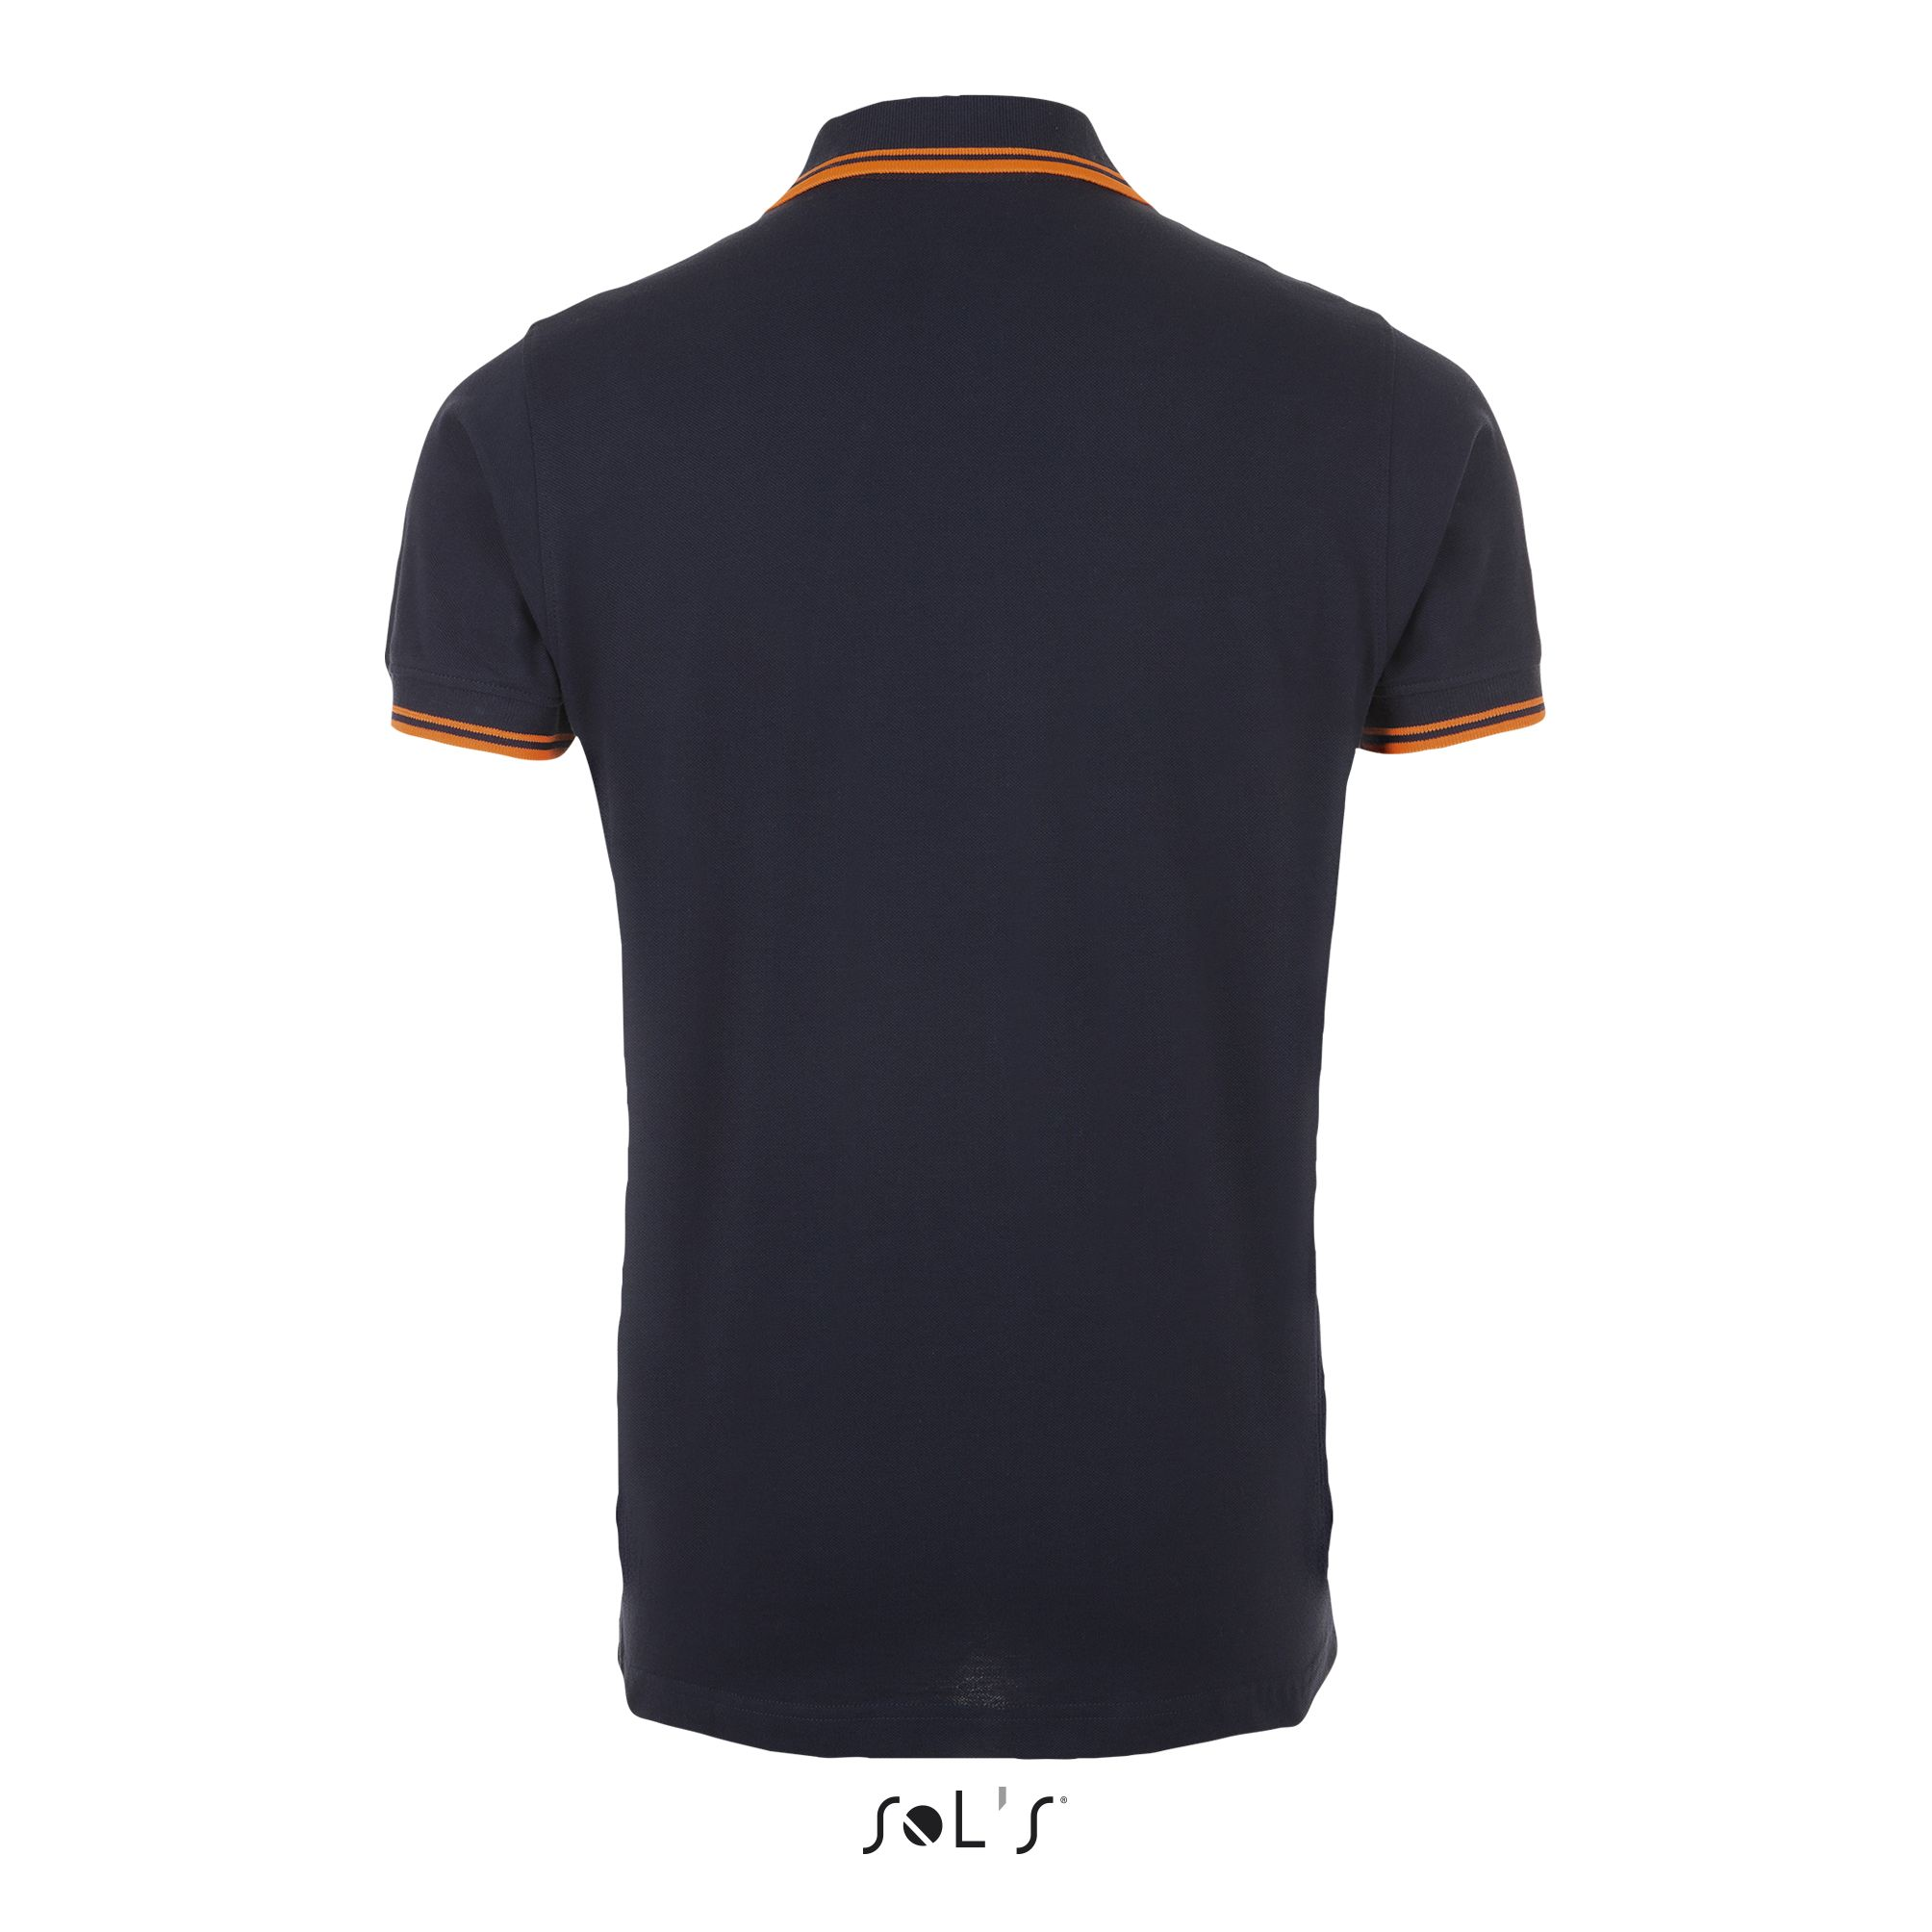 535 - French marine / Orange fluo